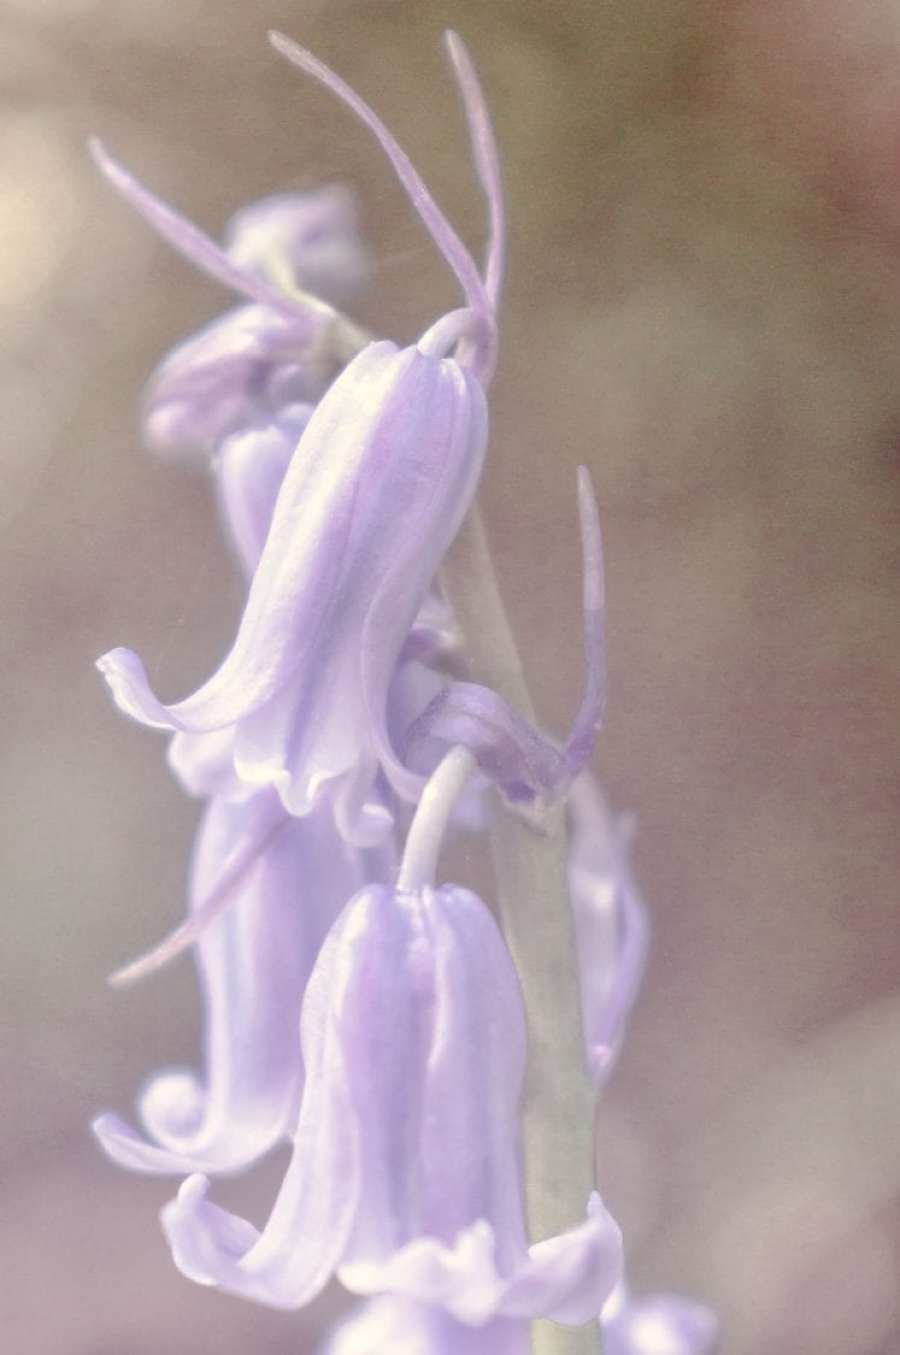 Bell shaped flowers on bluebells